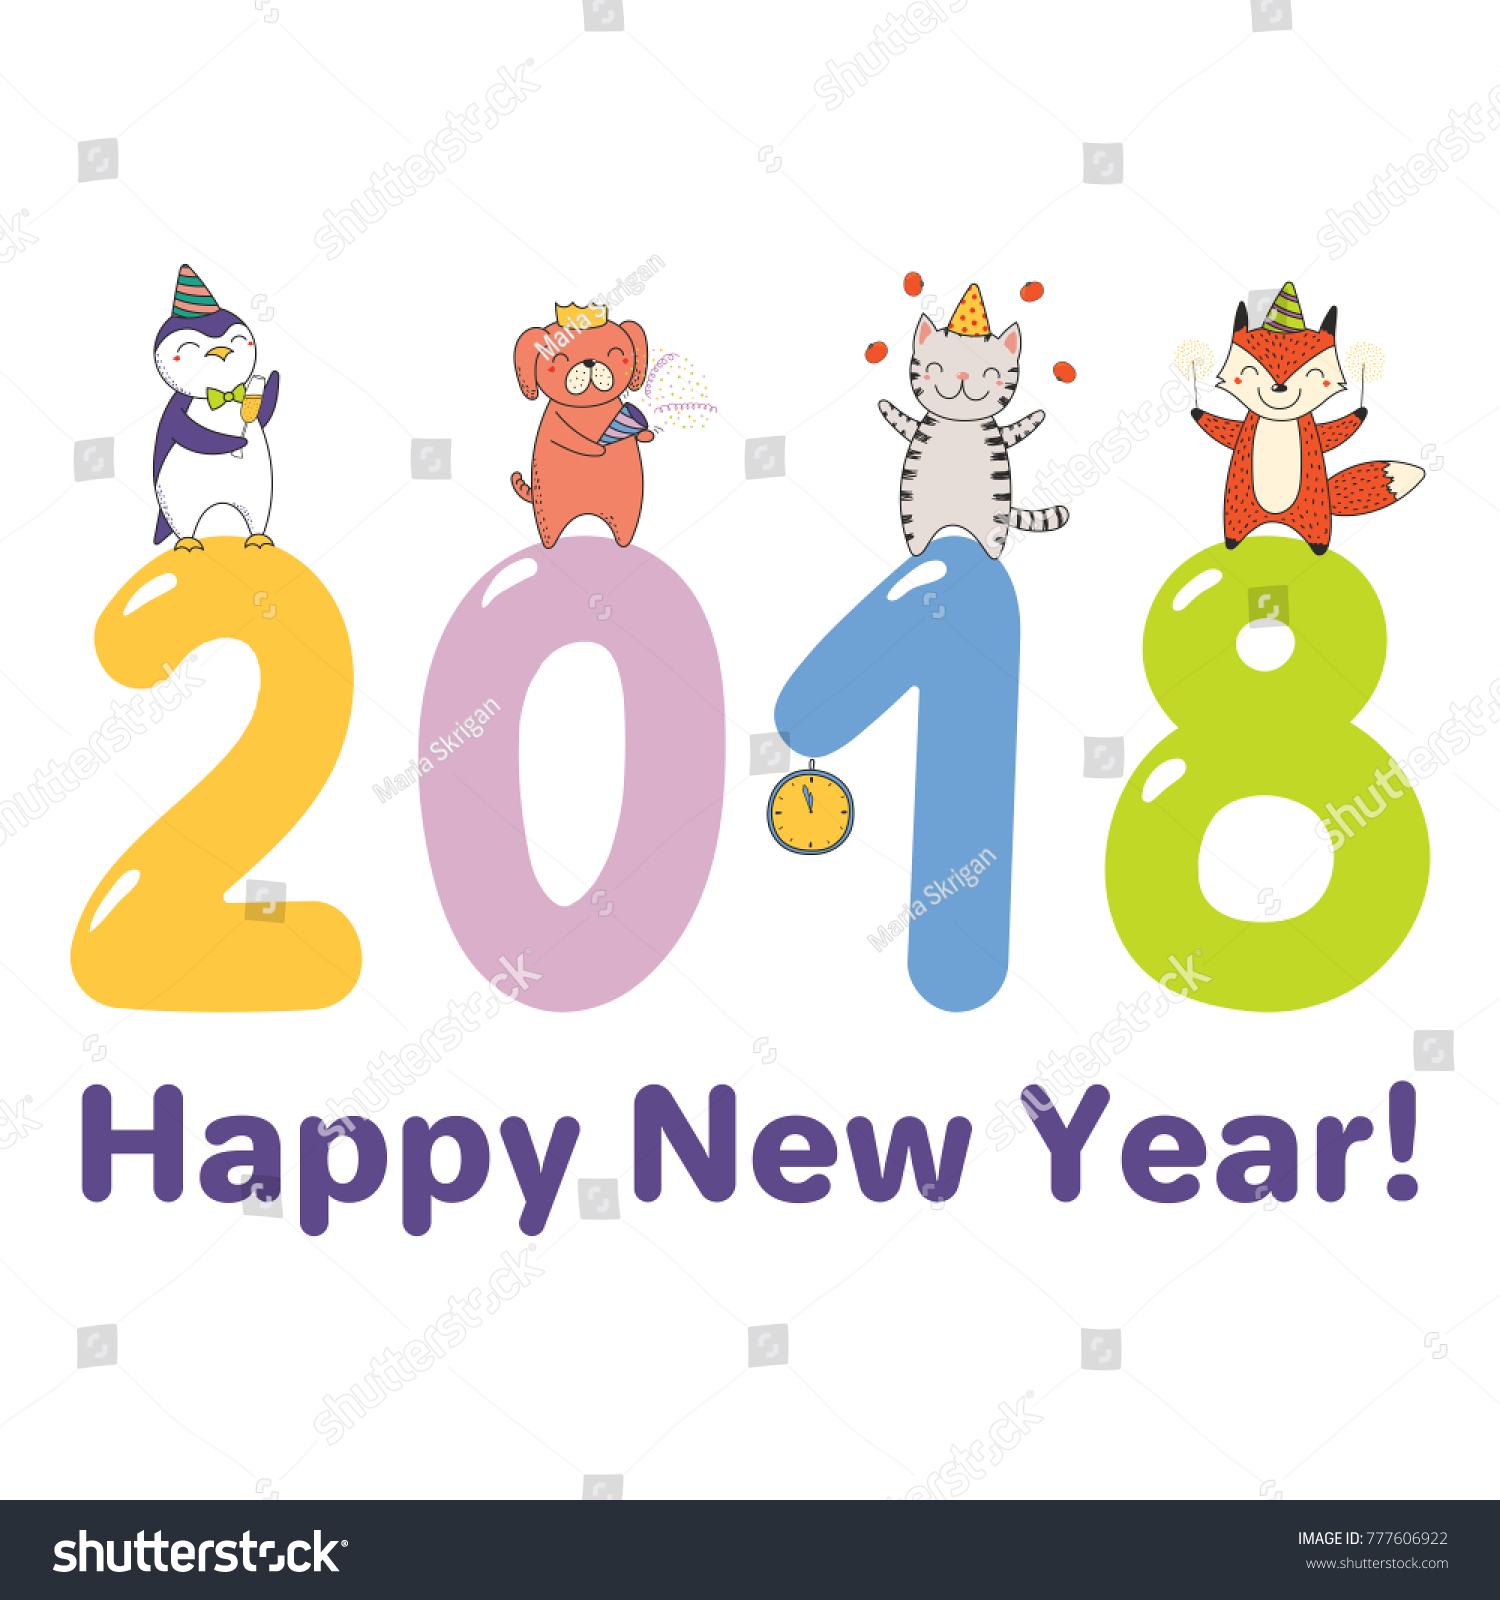 Hand Drawn Happy New Year 2018 Stock Vector (Royalty Free) 777606922 ...